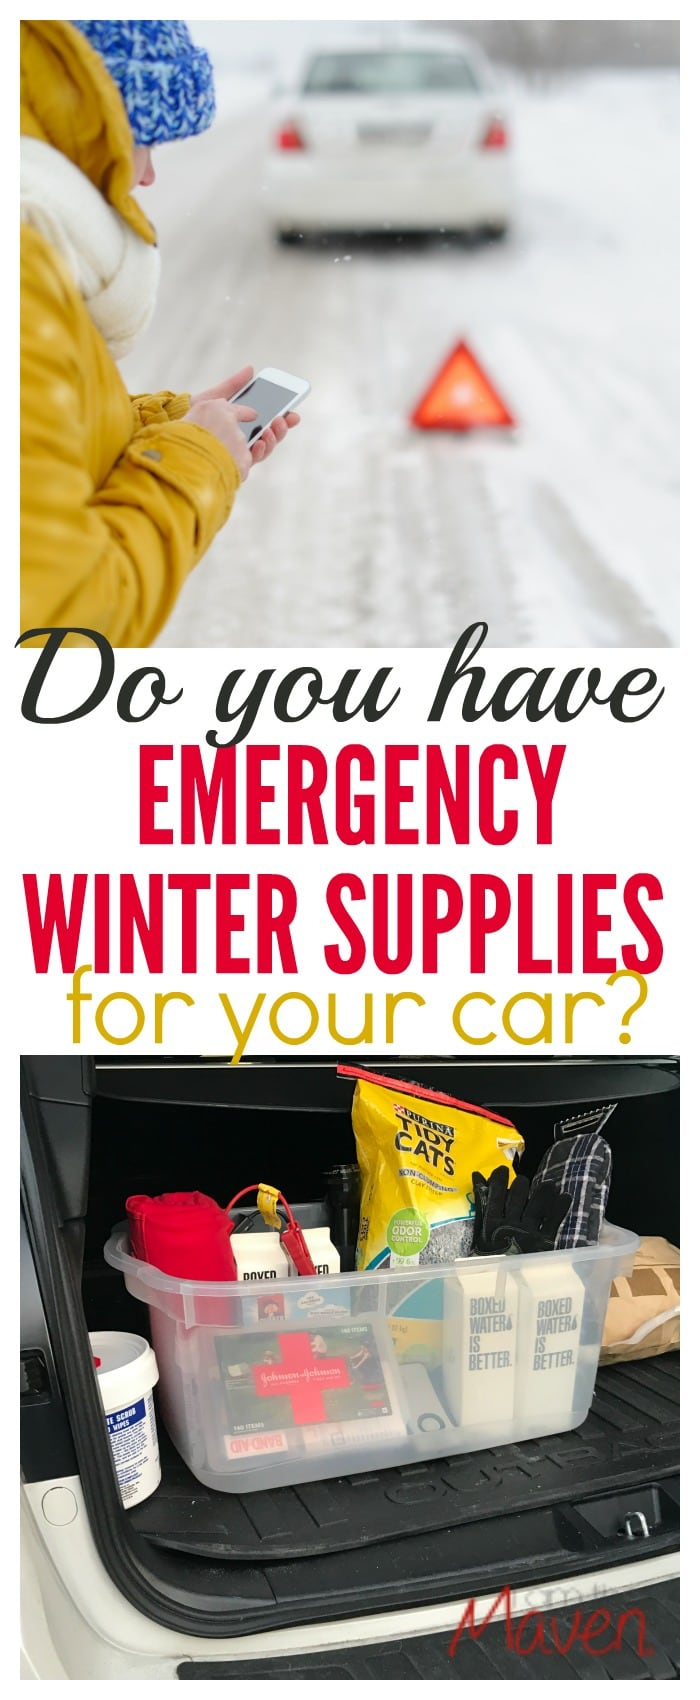 Do you have emergency winter supplies for your car? Use this checklist as a guide and be prepared.